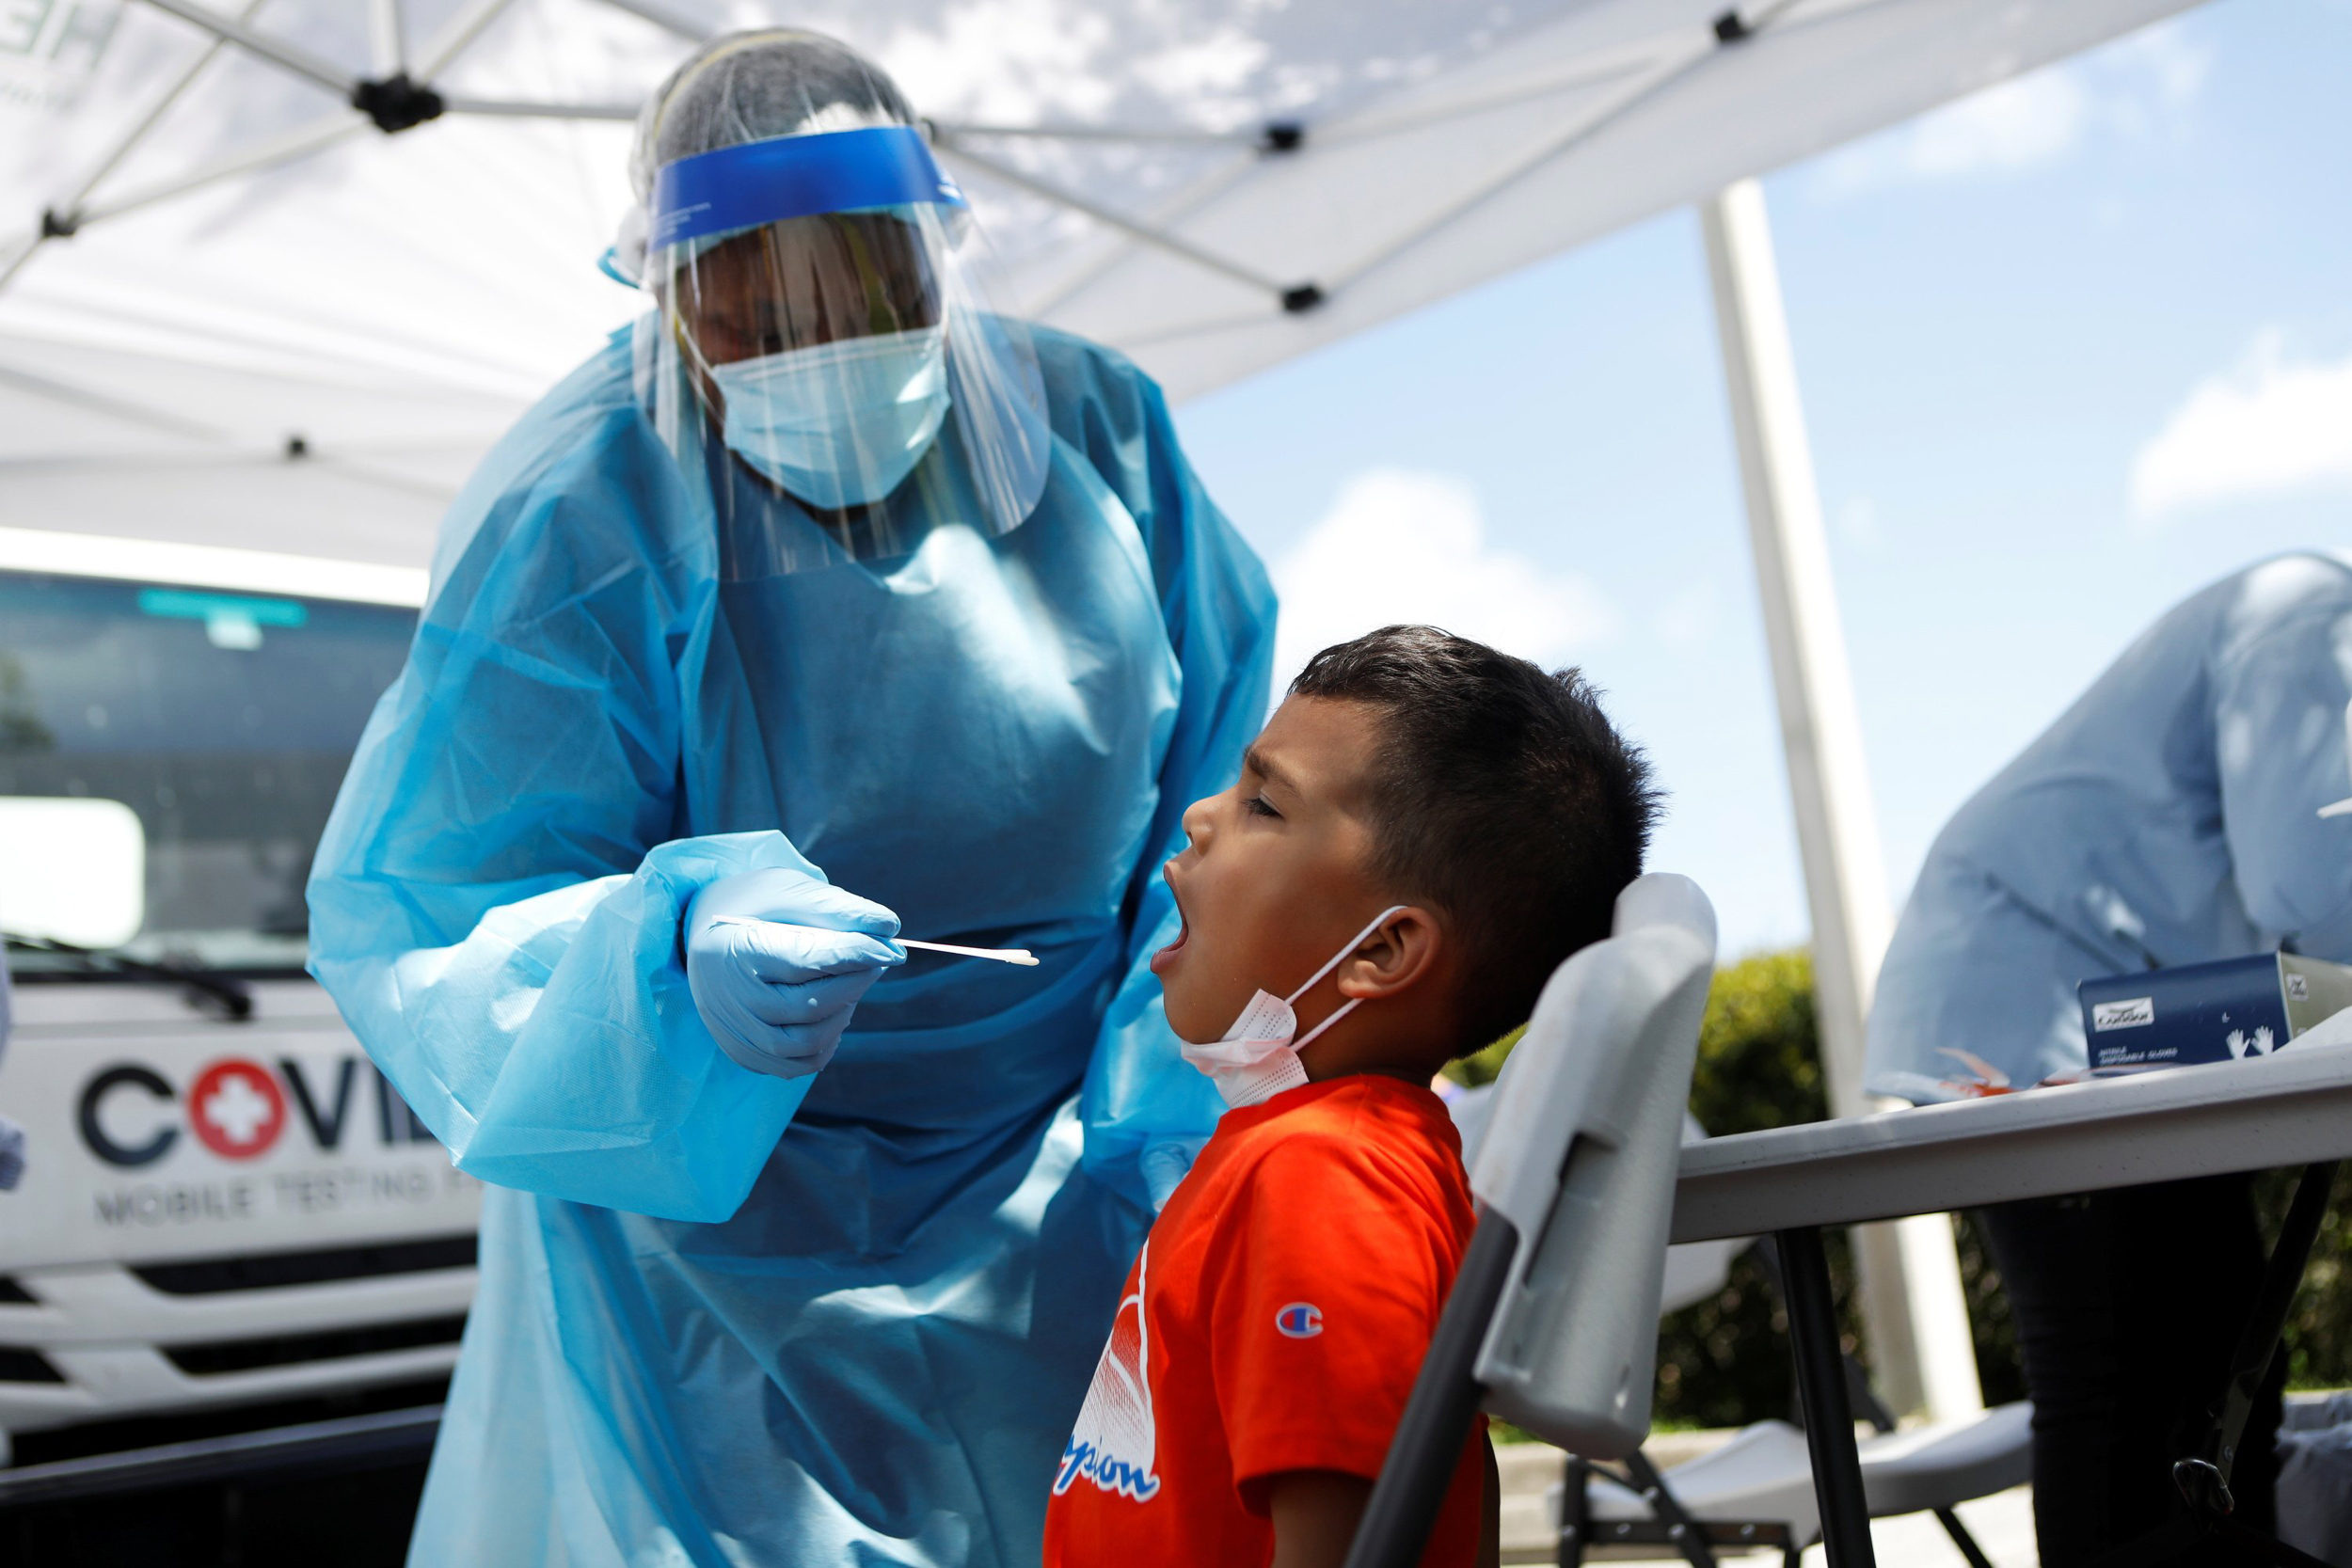 Long testing lines, full ICUs: Pandemic return was 'completely preventable,' experts say